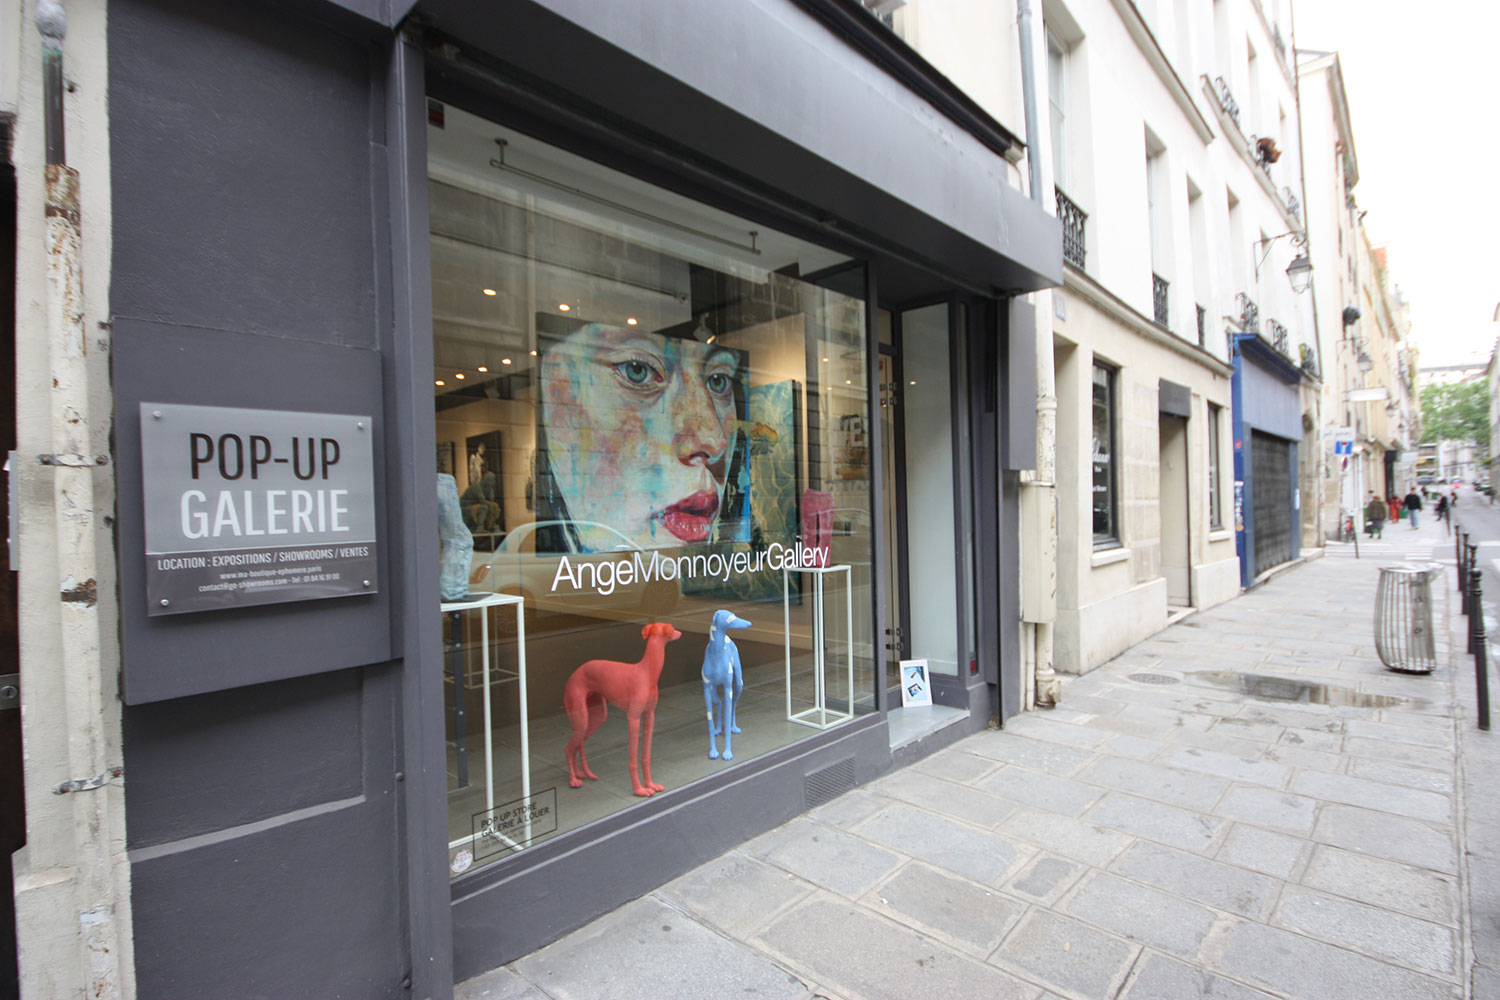 location-galerie-art-paris-pop-up